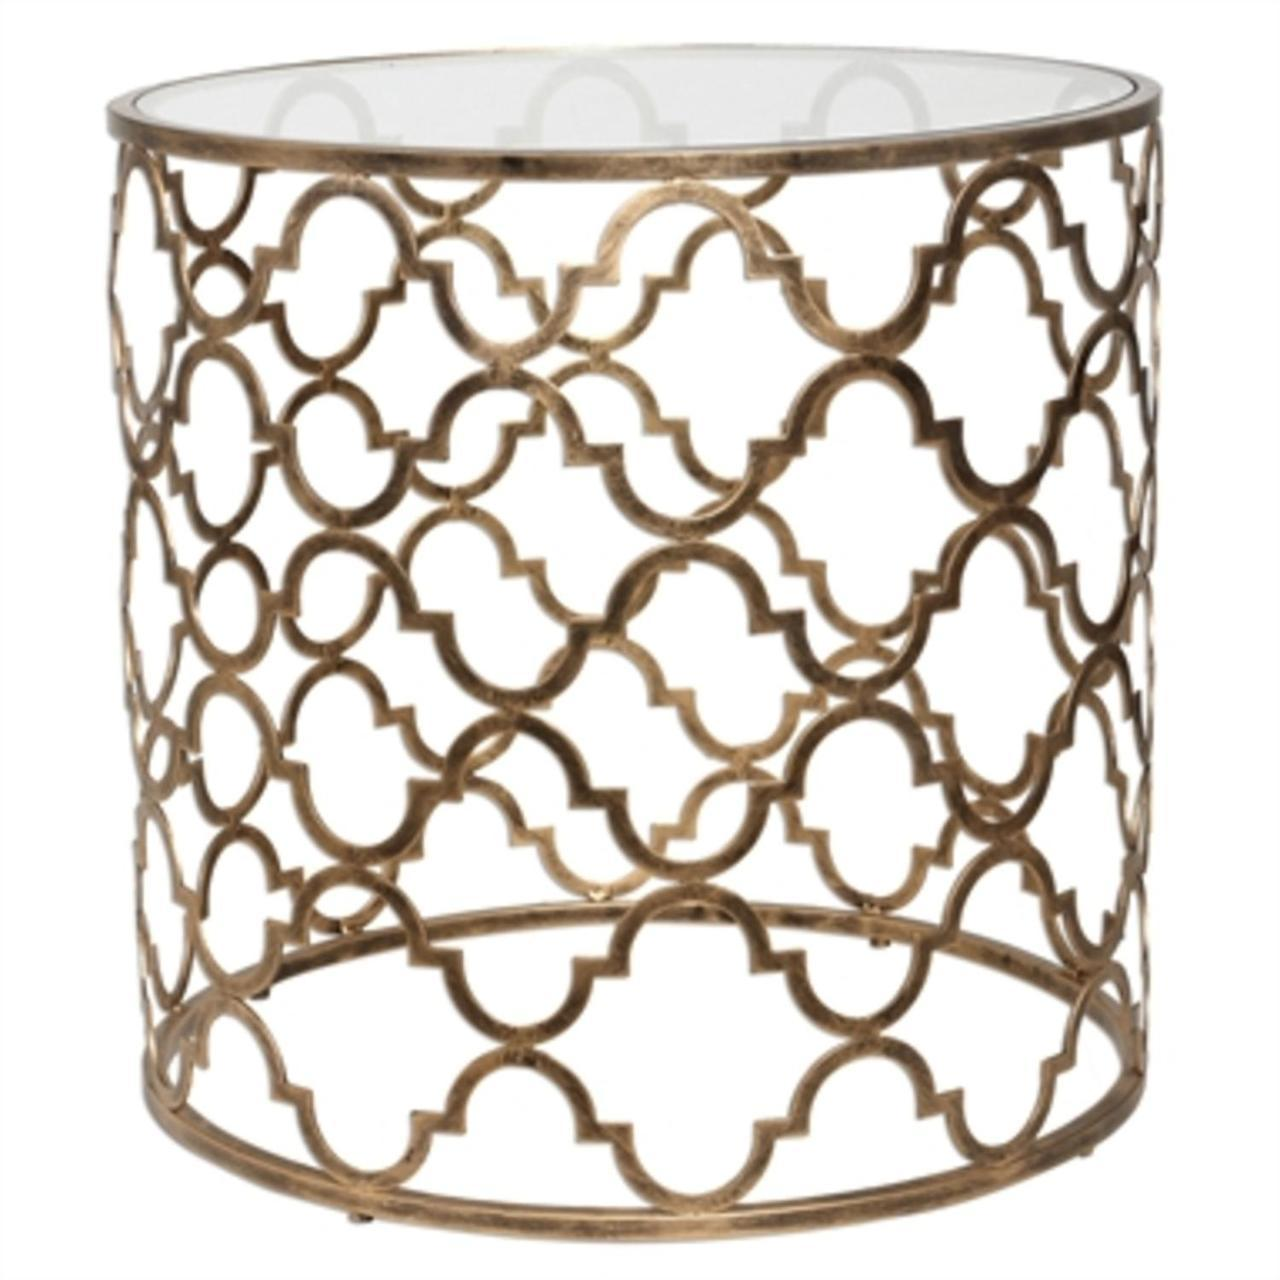 quatrefoil antique gold iron clear tempered glass round accent table skirts and end mosaic tile monarch light lamp side coffee cooler lazy susan wedding linens whole solid maple